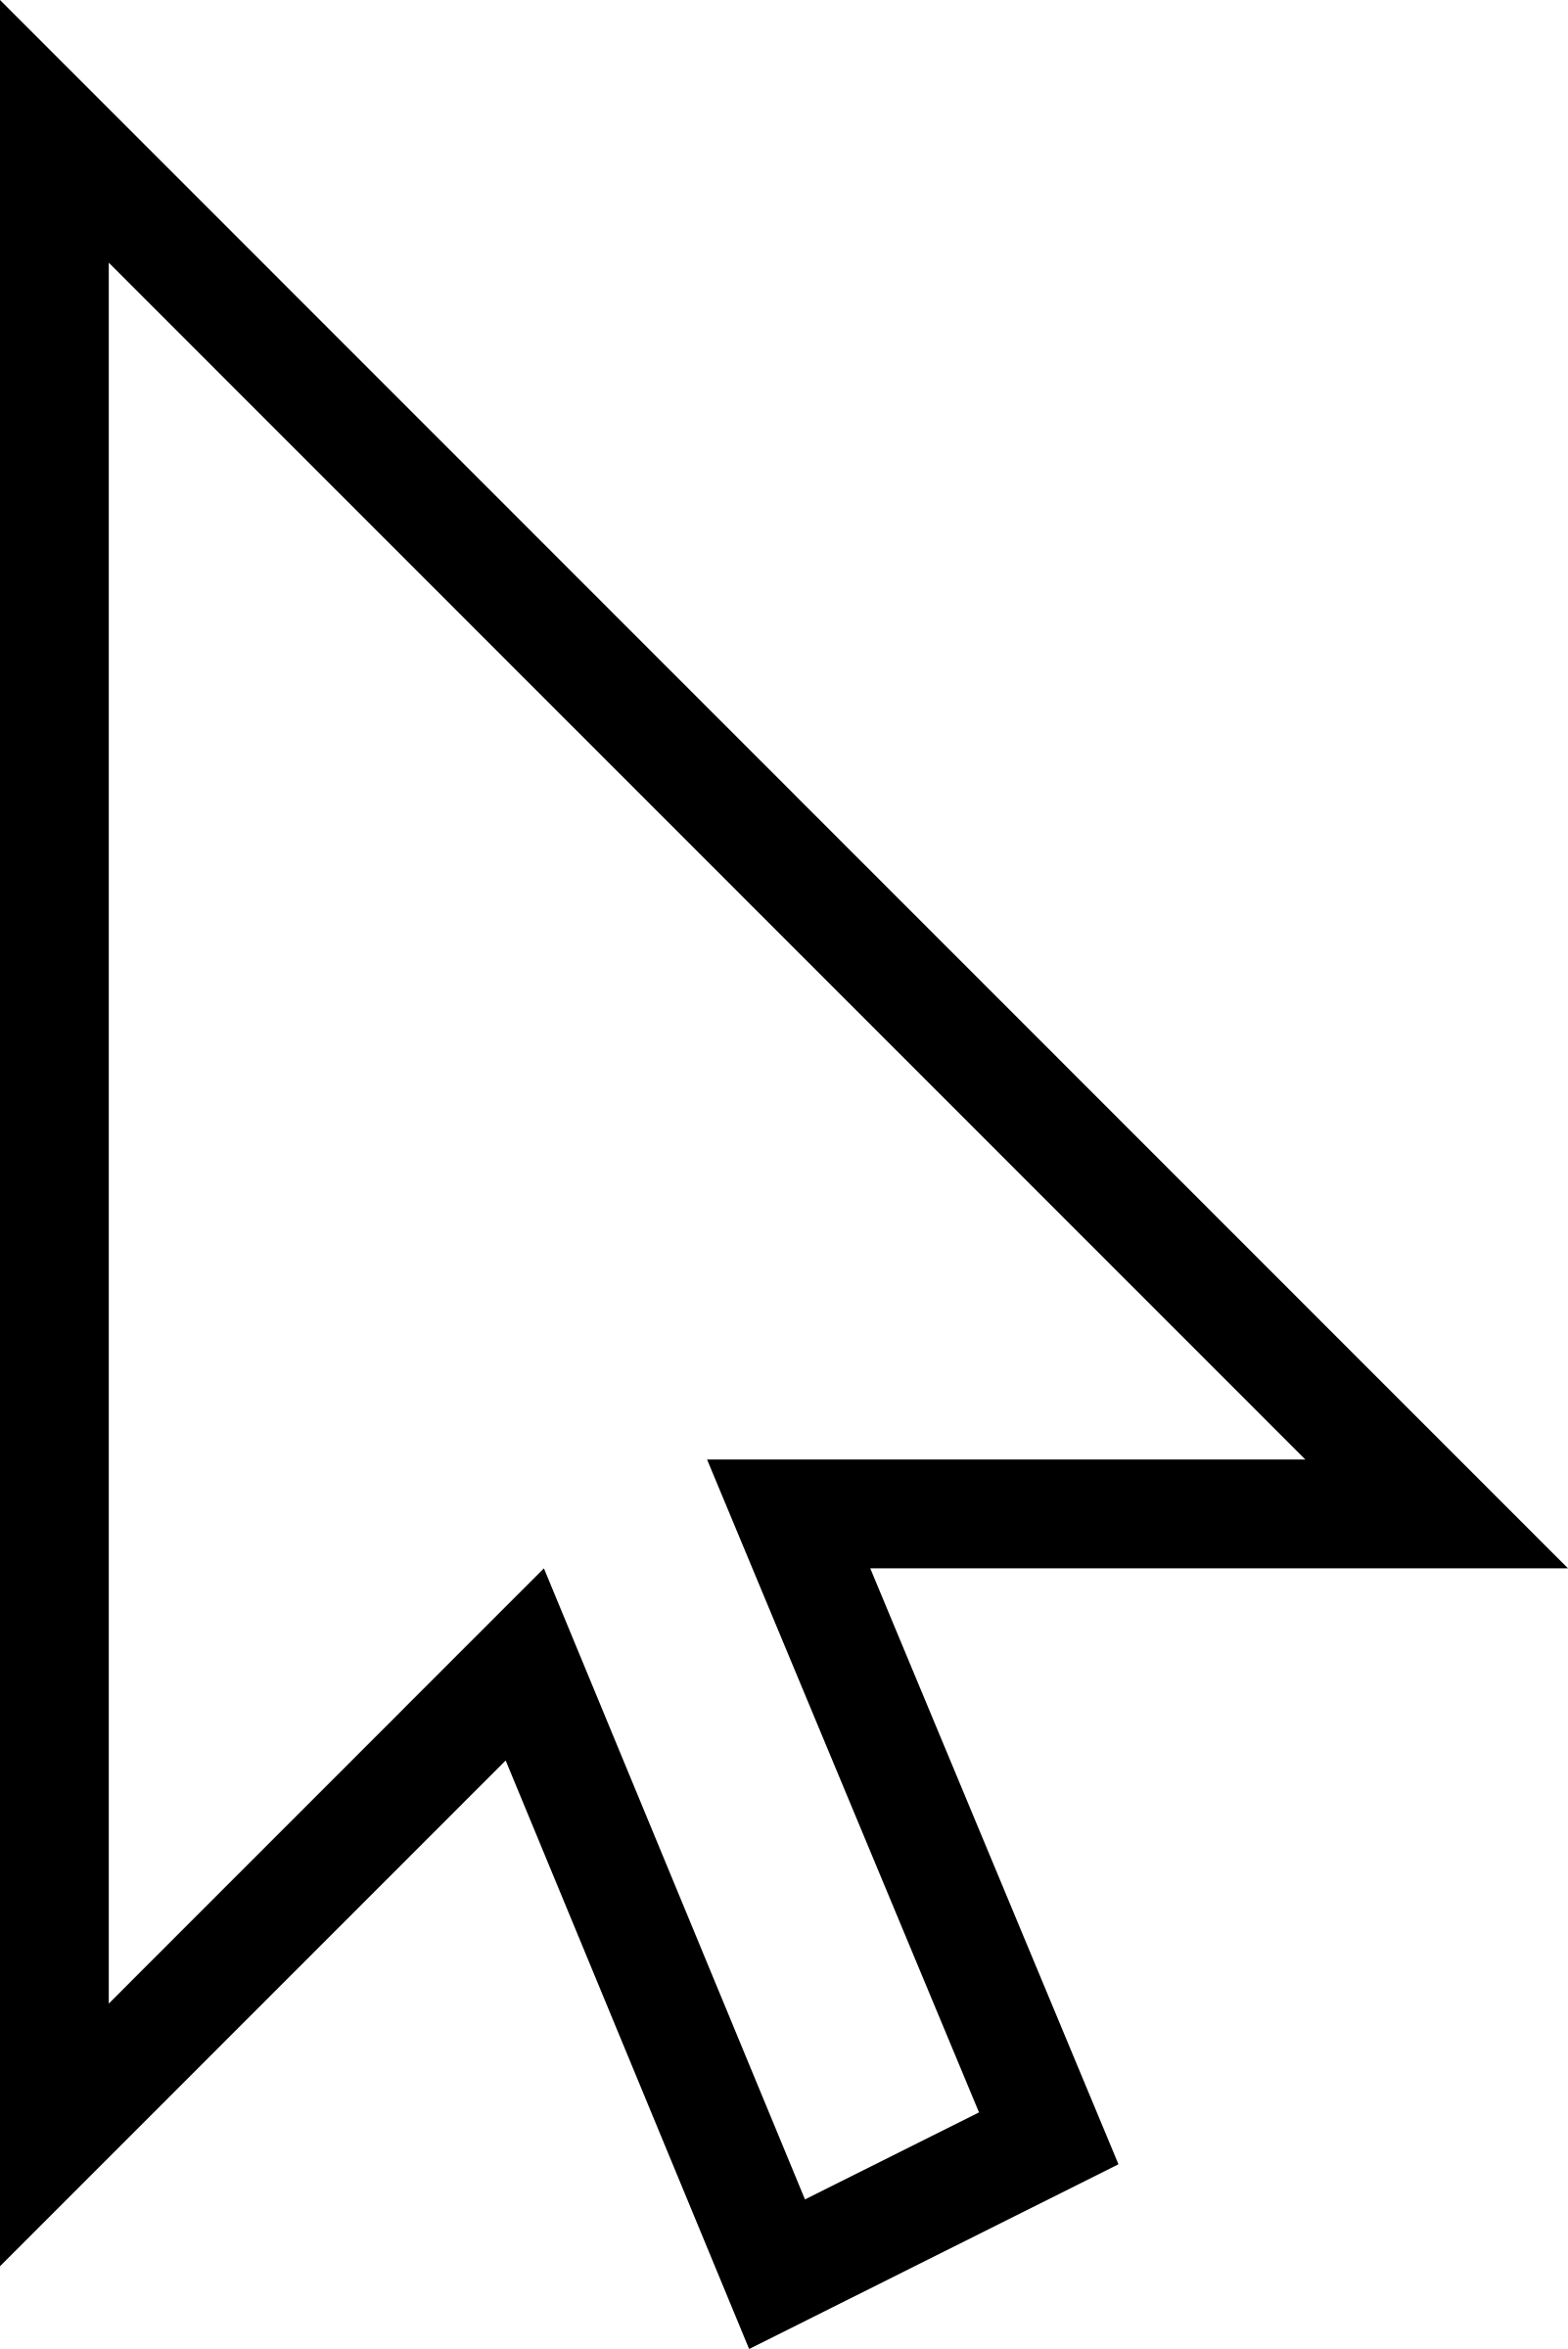 White Mouse Cursor Arrow By Qubodup image #1113